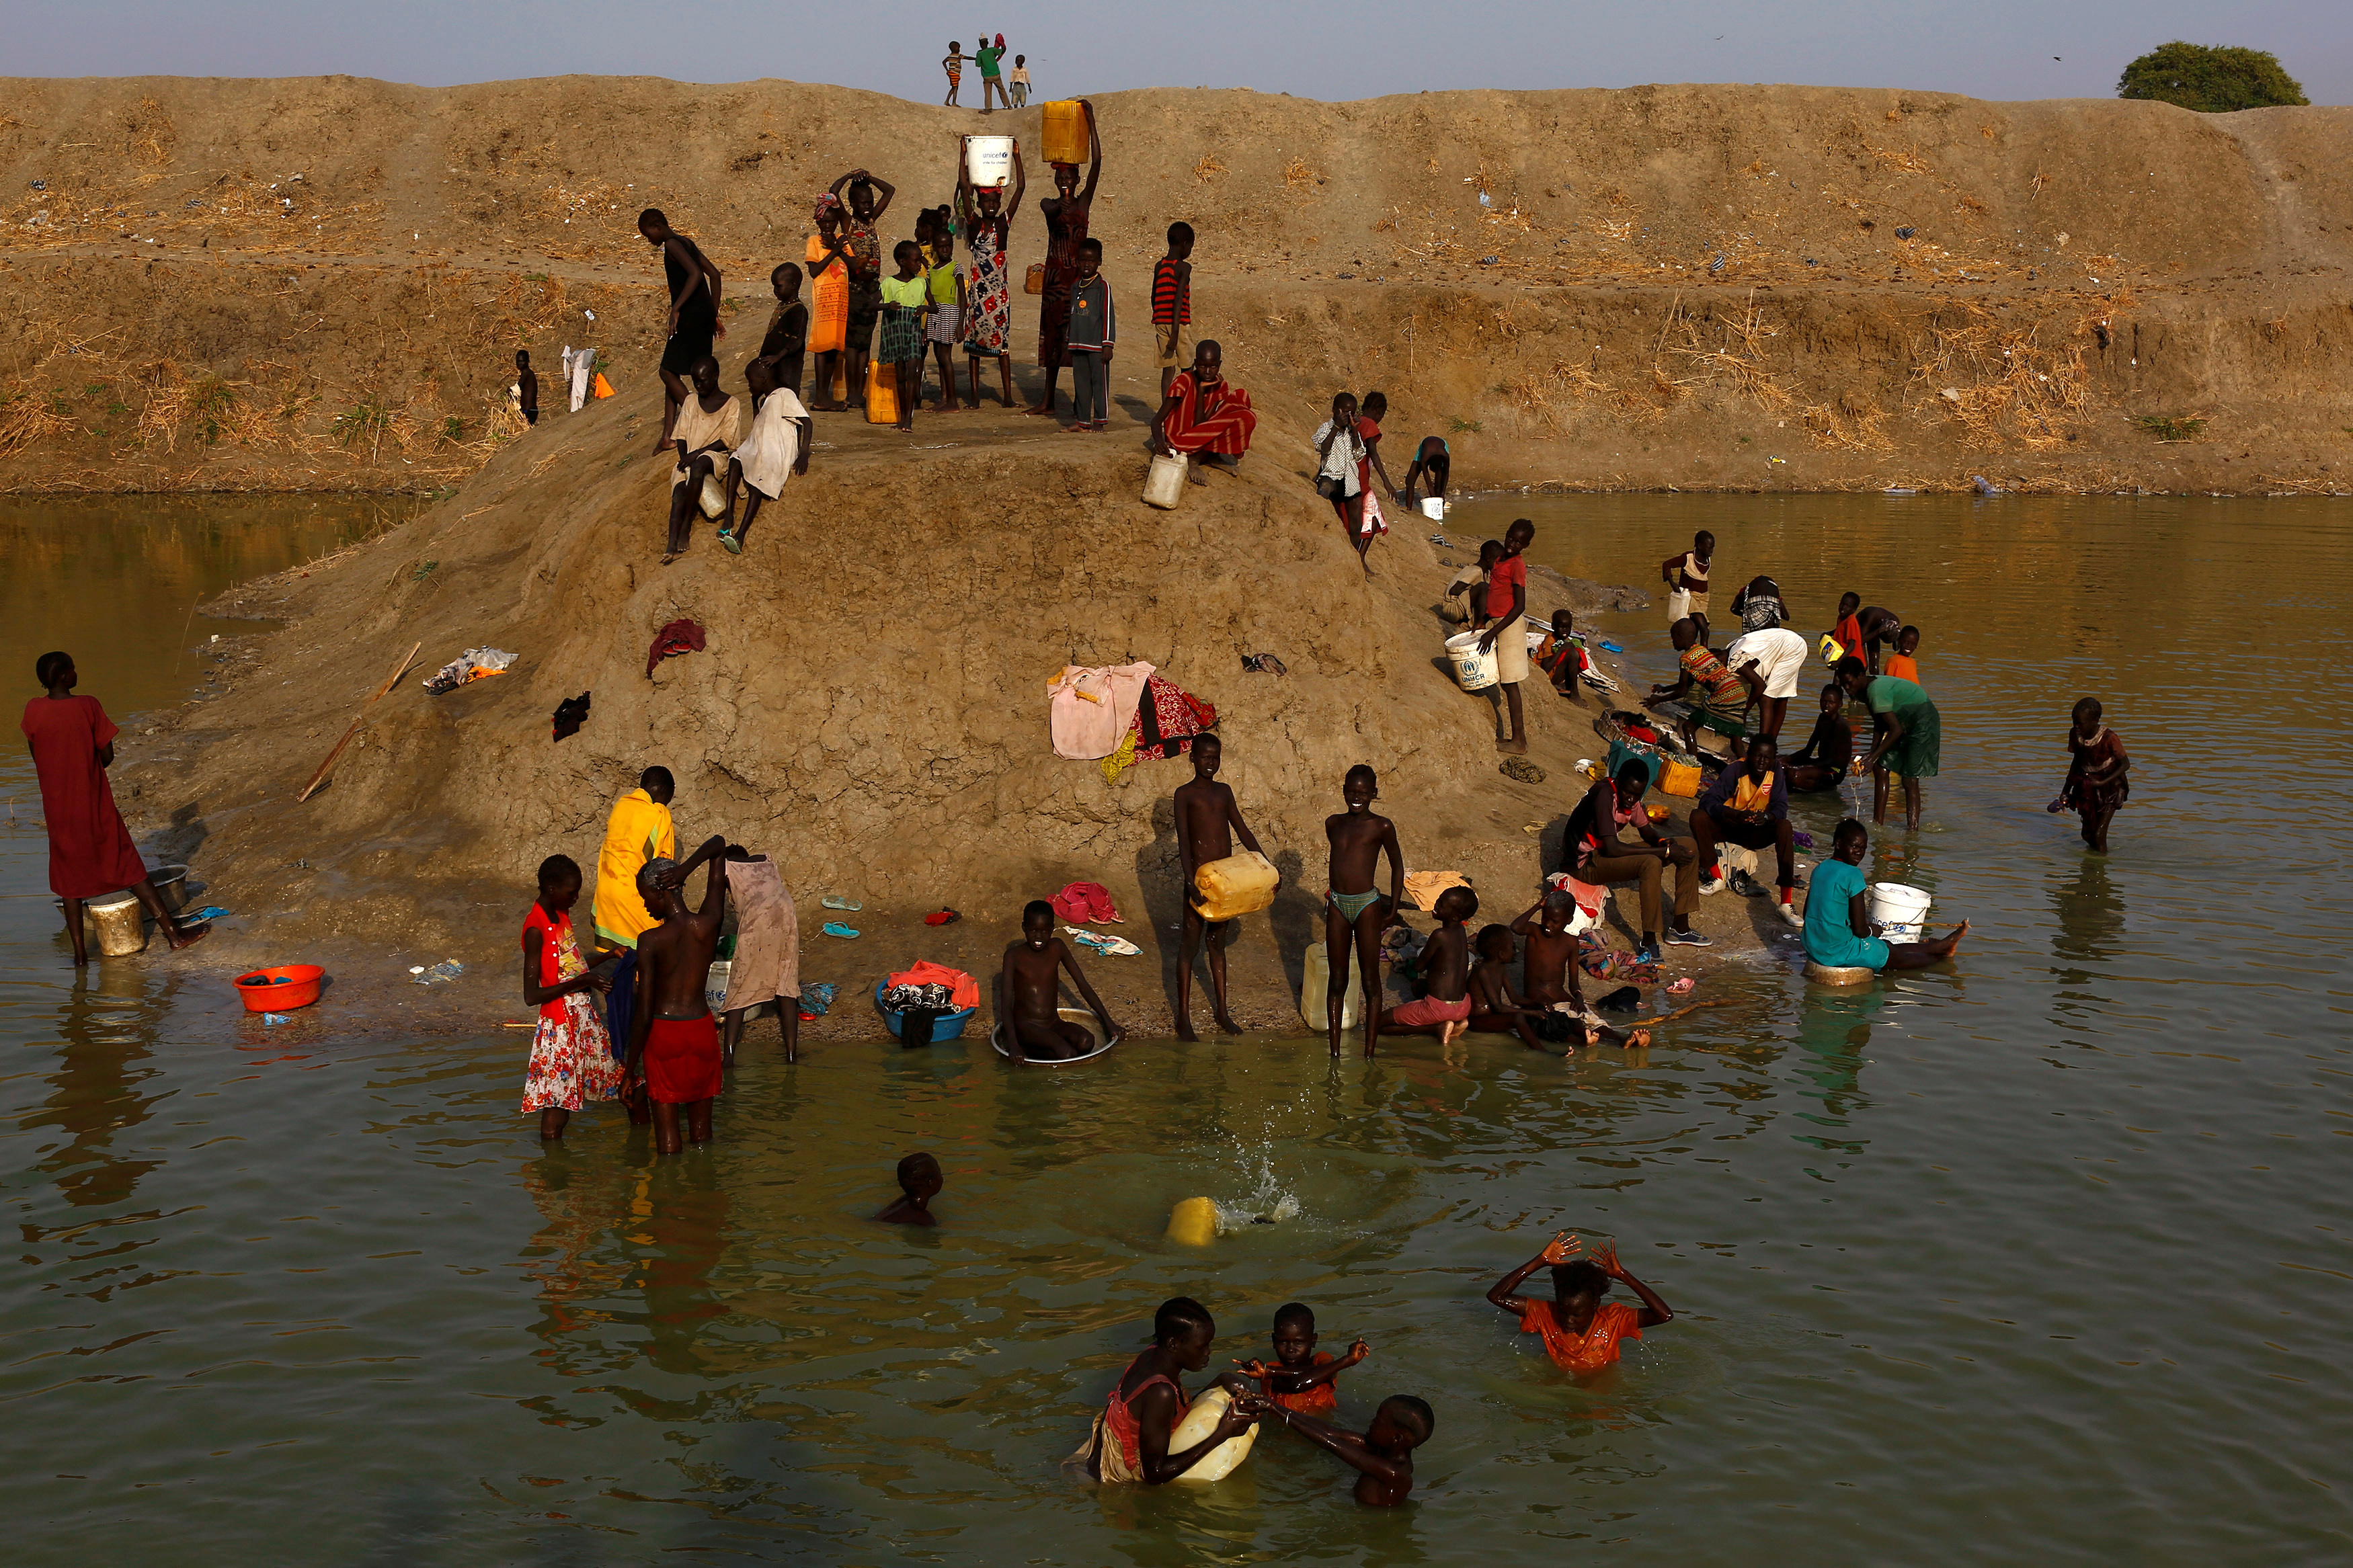 Internally displaced people wash and collect water in a reservoir in the U.N. Mission in South Sudan protected site near Bentiu in northern South Sudan. Photo by Siegfried Modola/Reuters